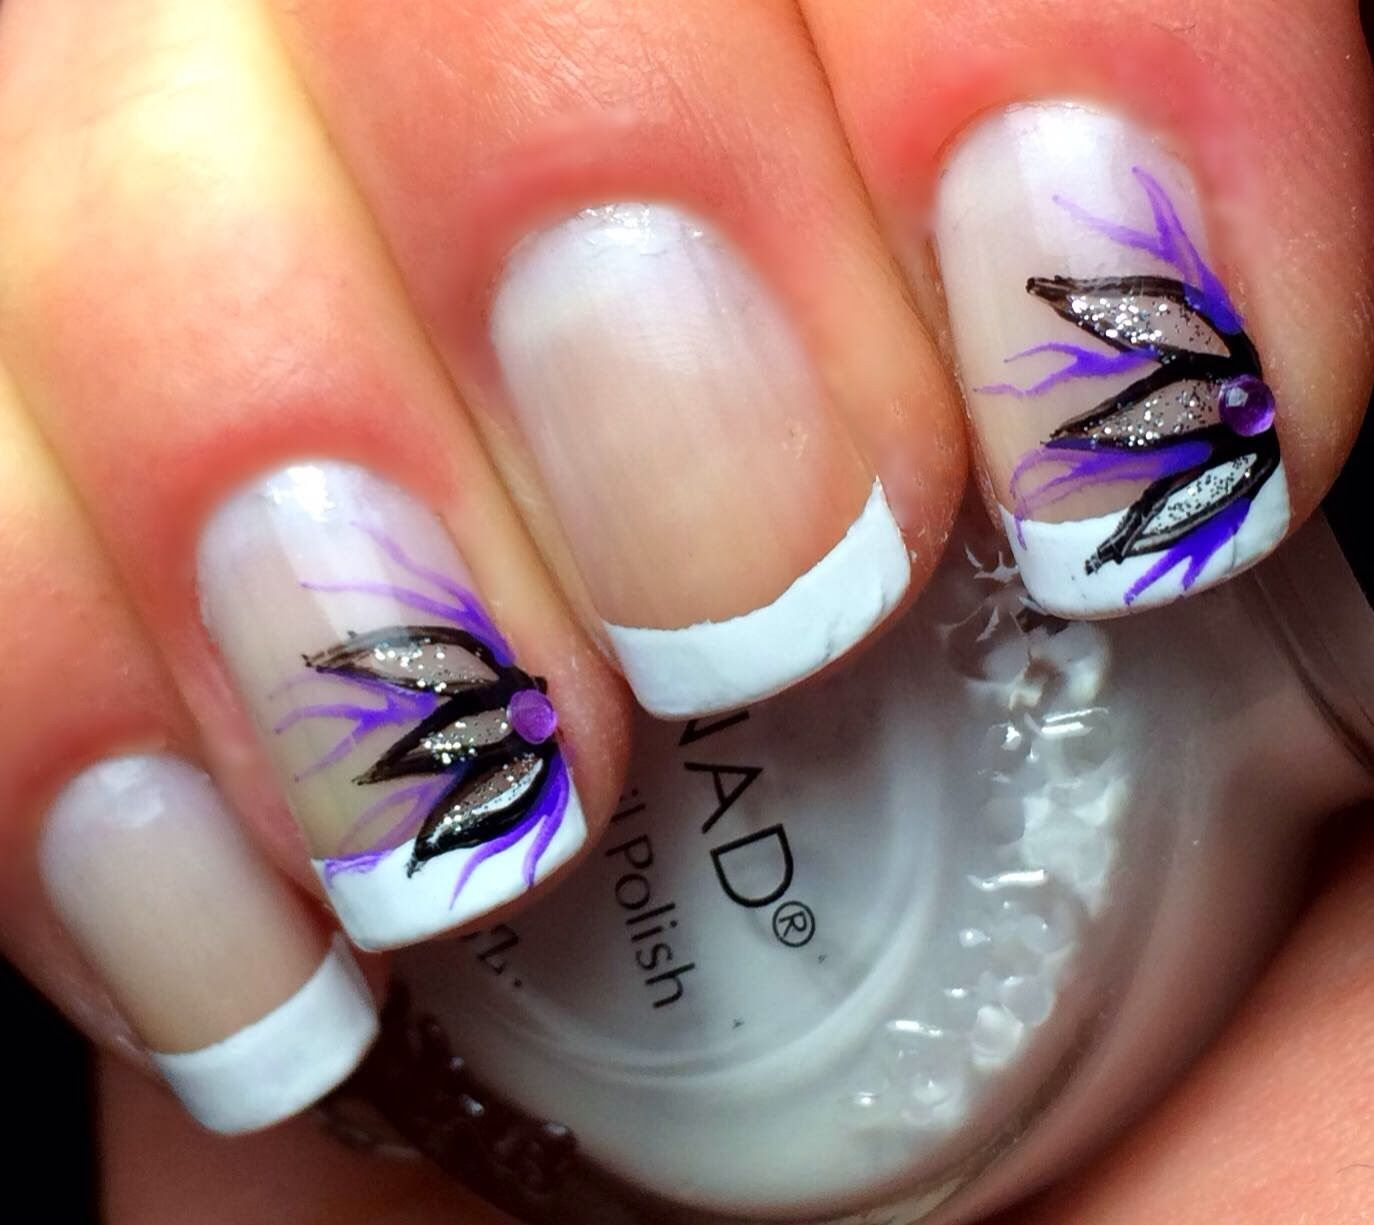 Nails by an OPI Addict: French Tip Flowers   Nails by an OPI Addict ...